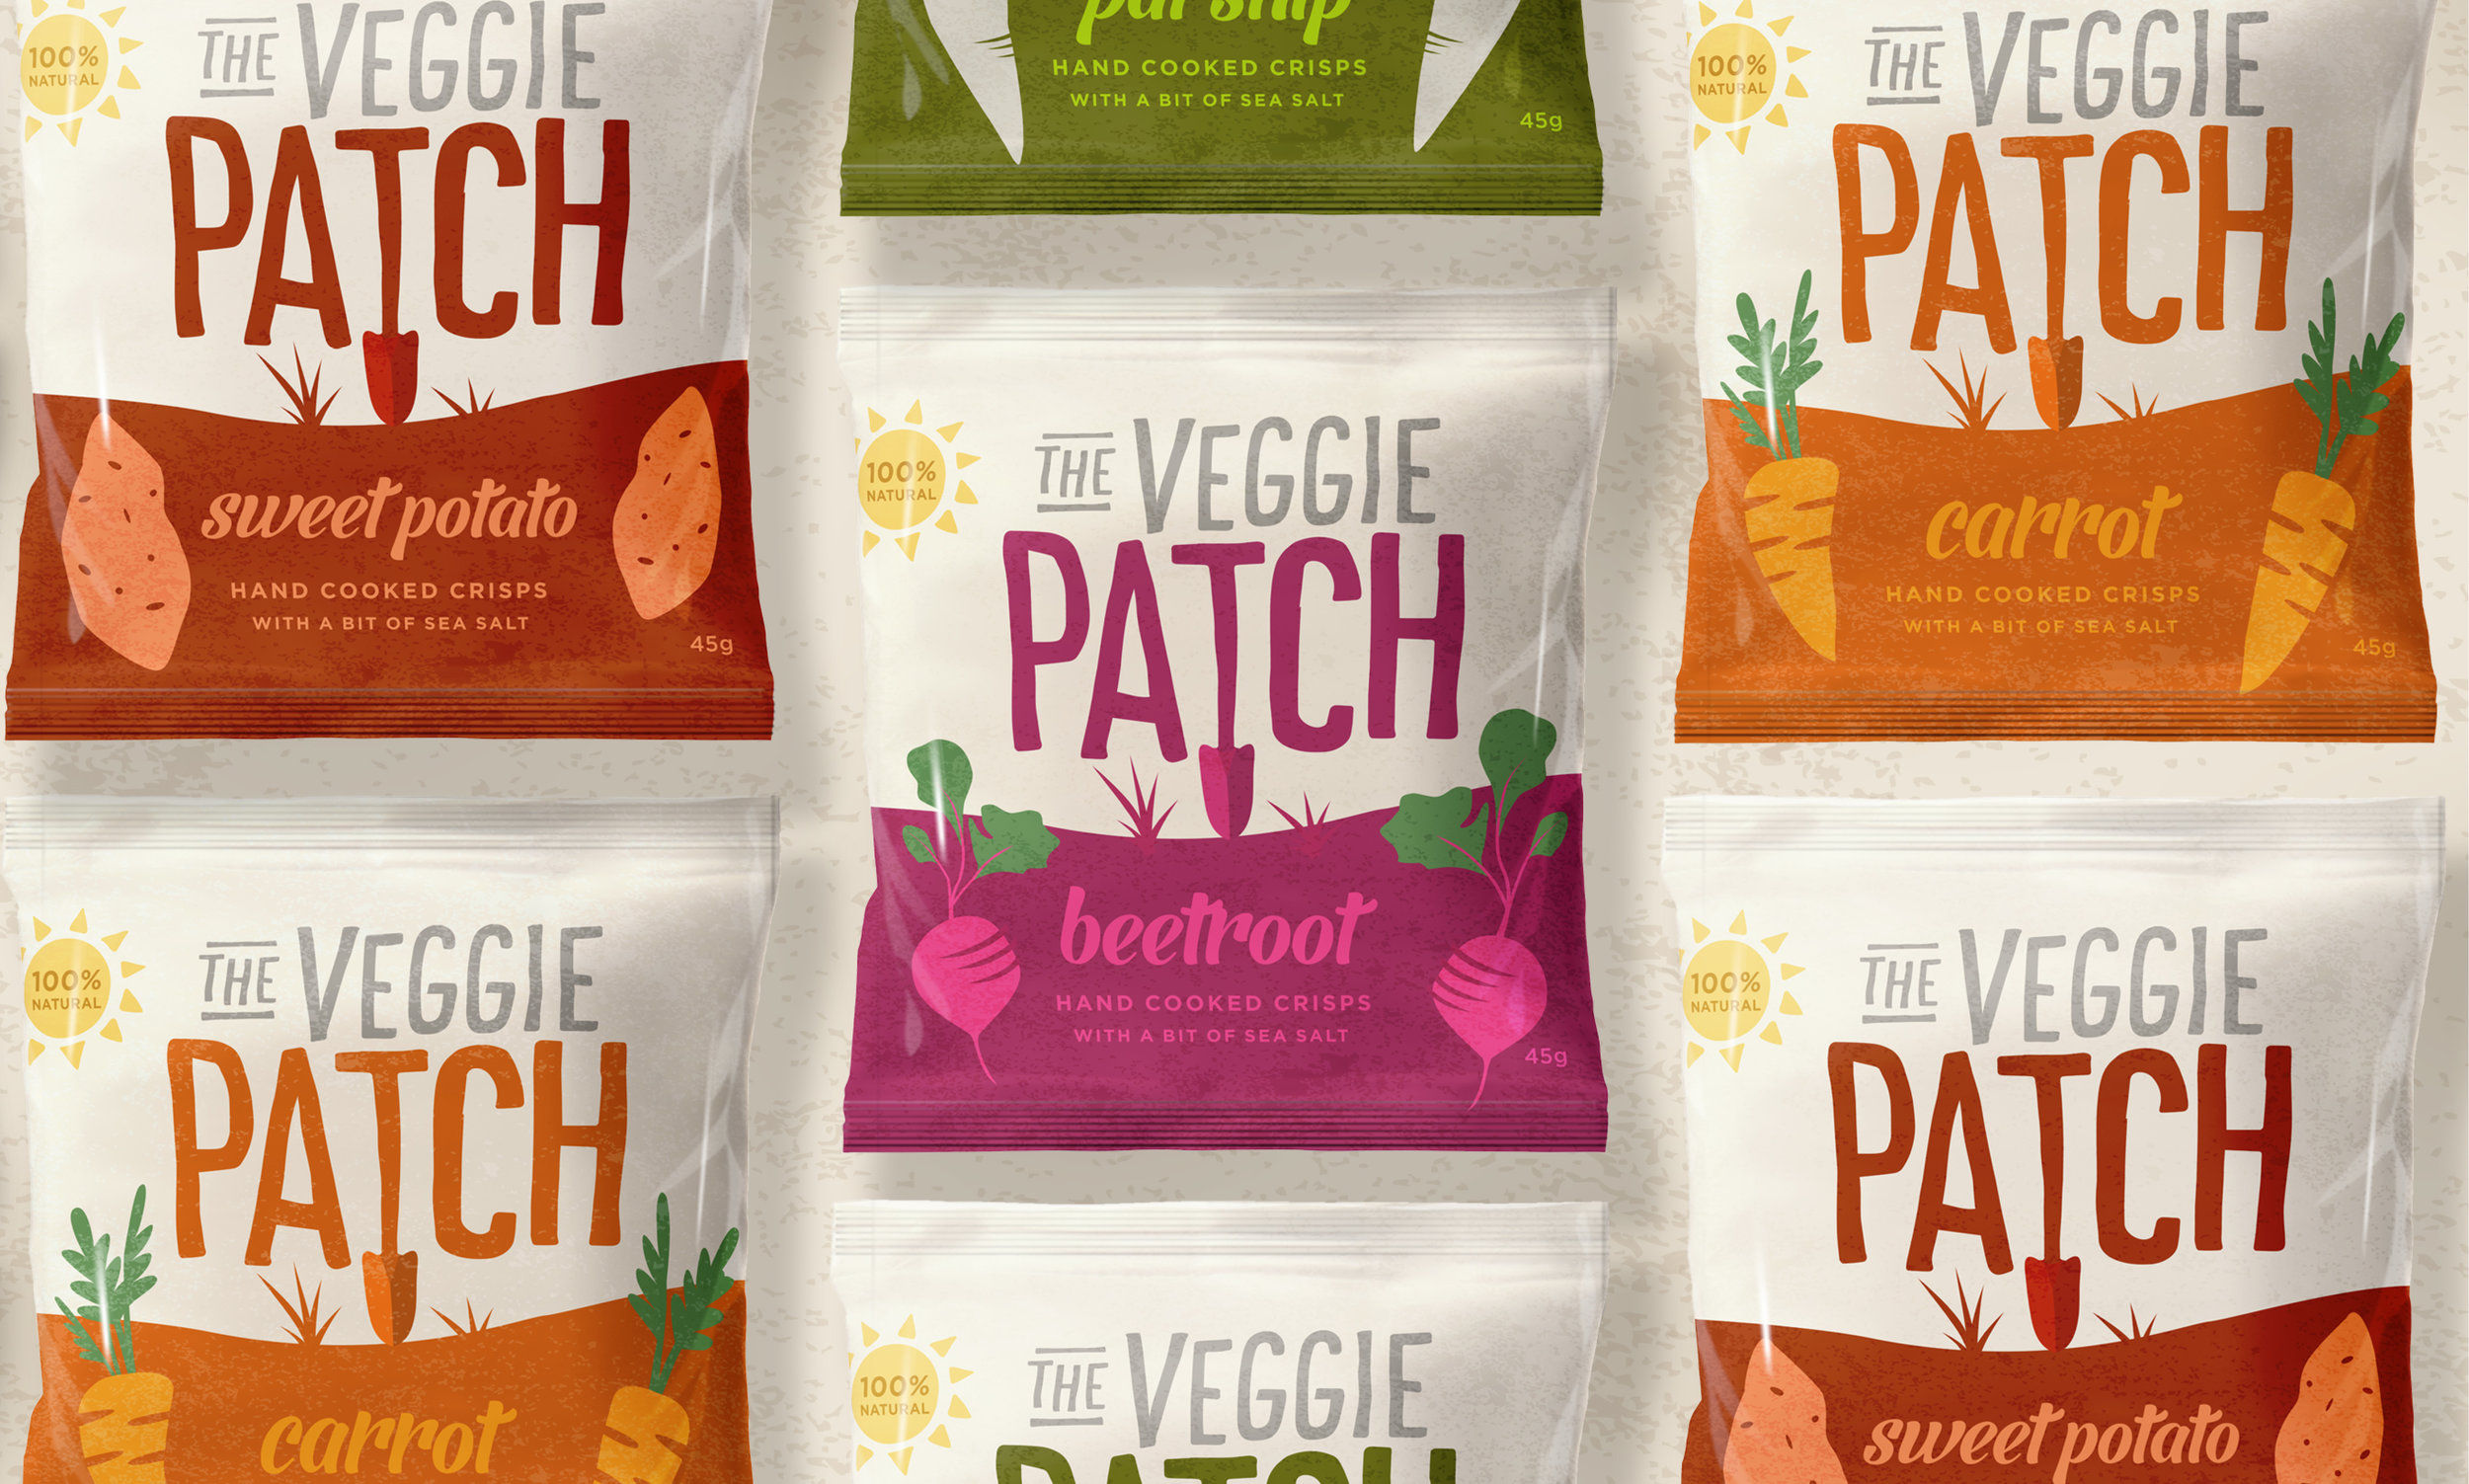 Veggie Patch Our Revolution Brand Design Brand Logo Packaging Design Brand Strategy Brand Innovation Food Packaging Food Design Food Brand Chips Branding Chips Packaging Chips innovation Packaging Innovation